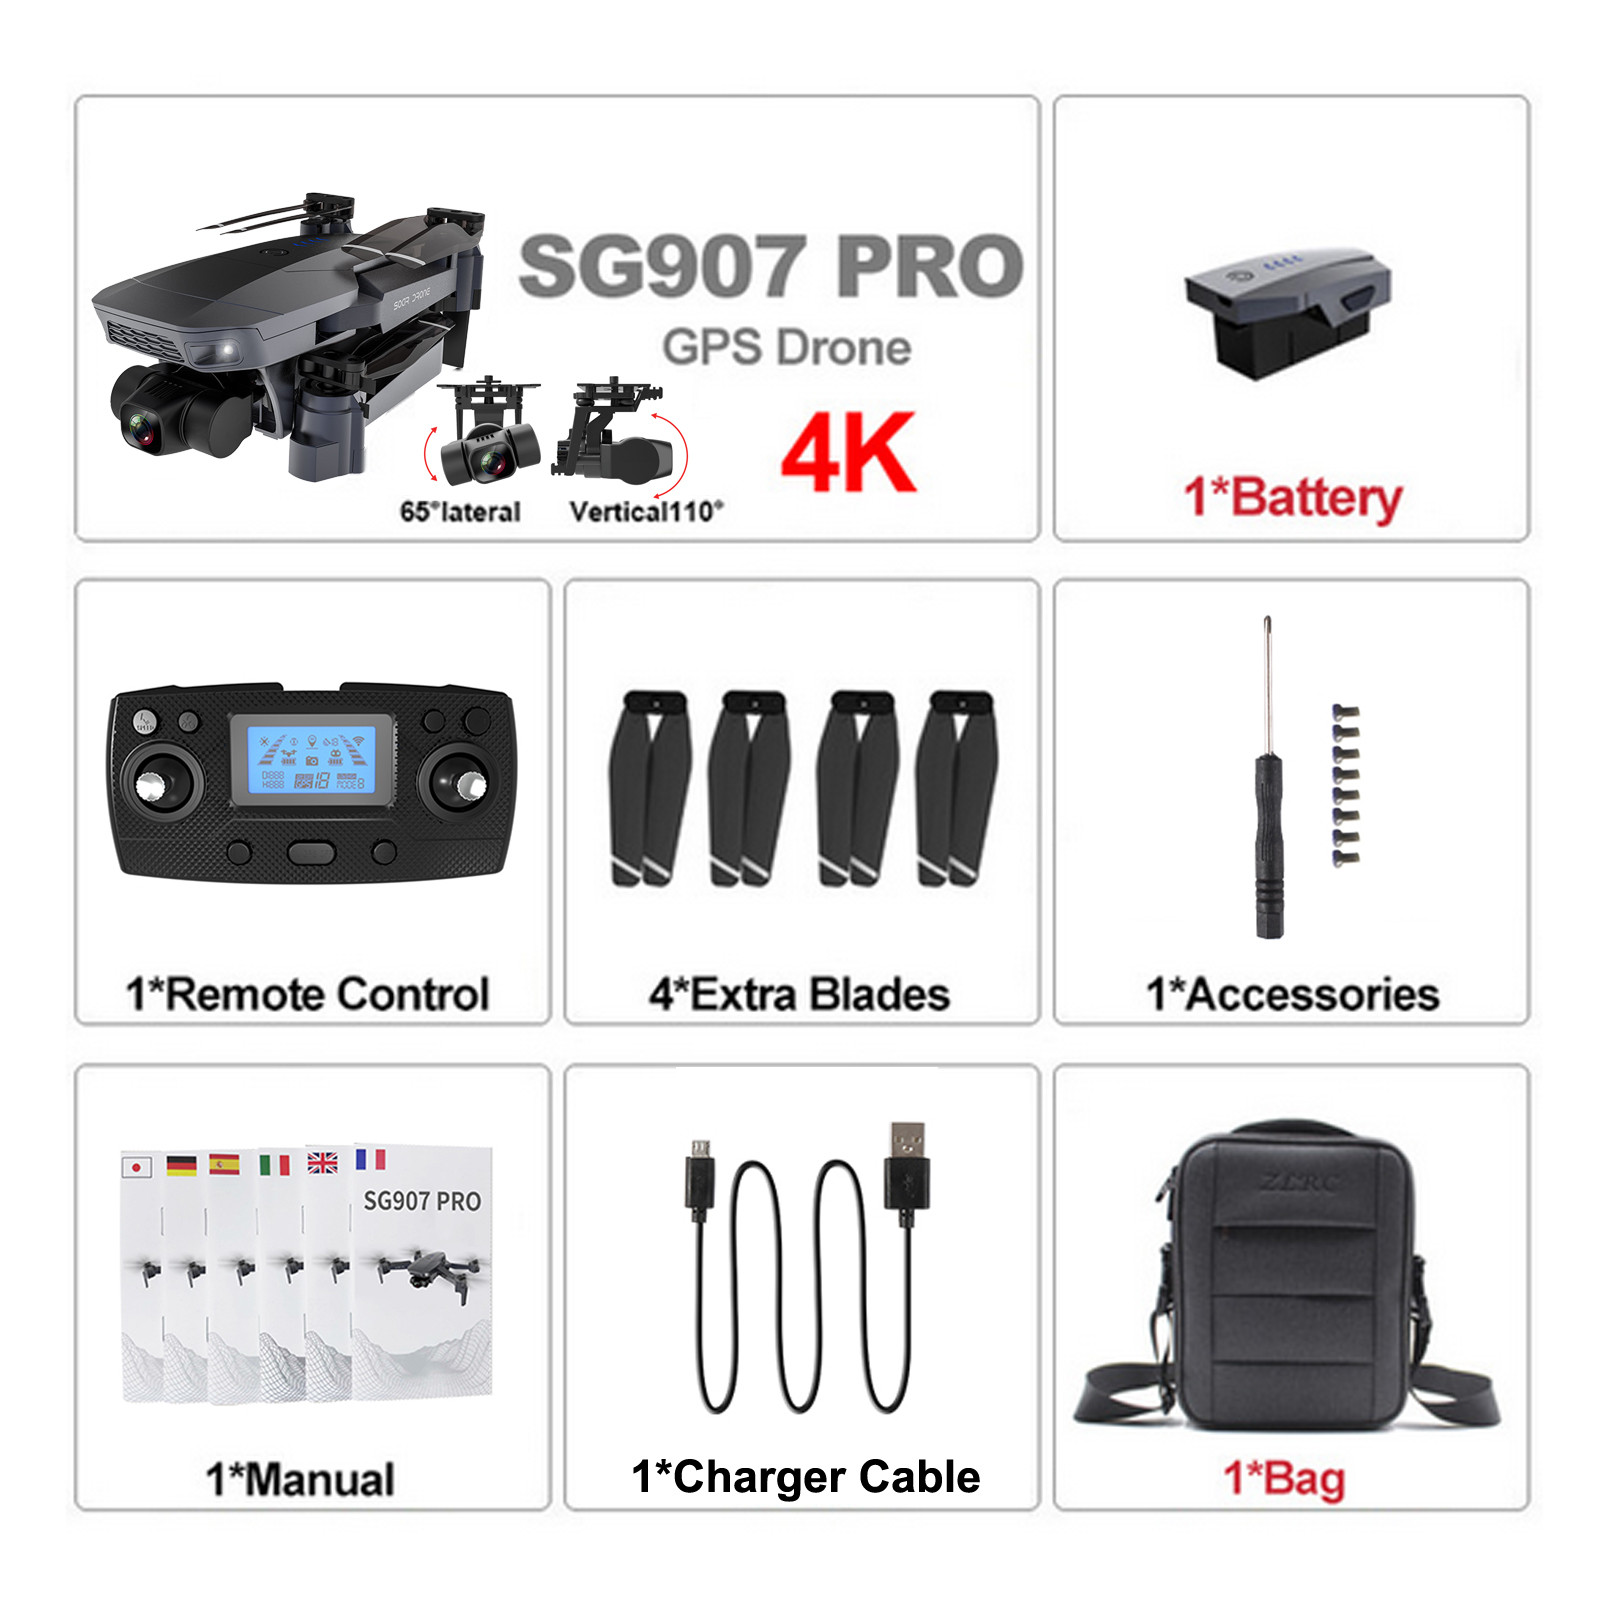 Hfc5f929ba86347c091955ae9cffb2101d - 2020 New Sg907 Pro 5g Wifi Drone 2-axis Gimbal 4k Camera Wifi Gps Rc Drone Toy Rc Four-axis Professional Folding Camera Drones